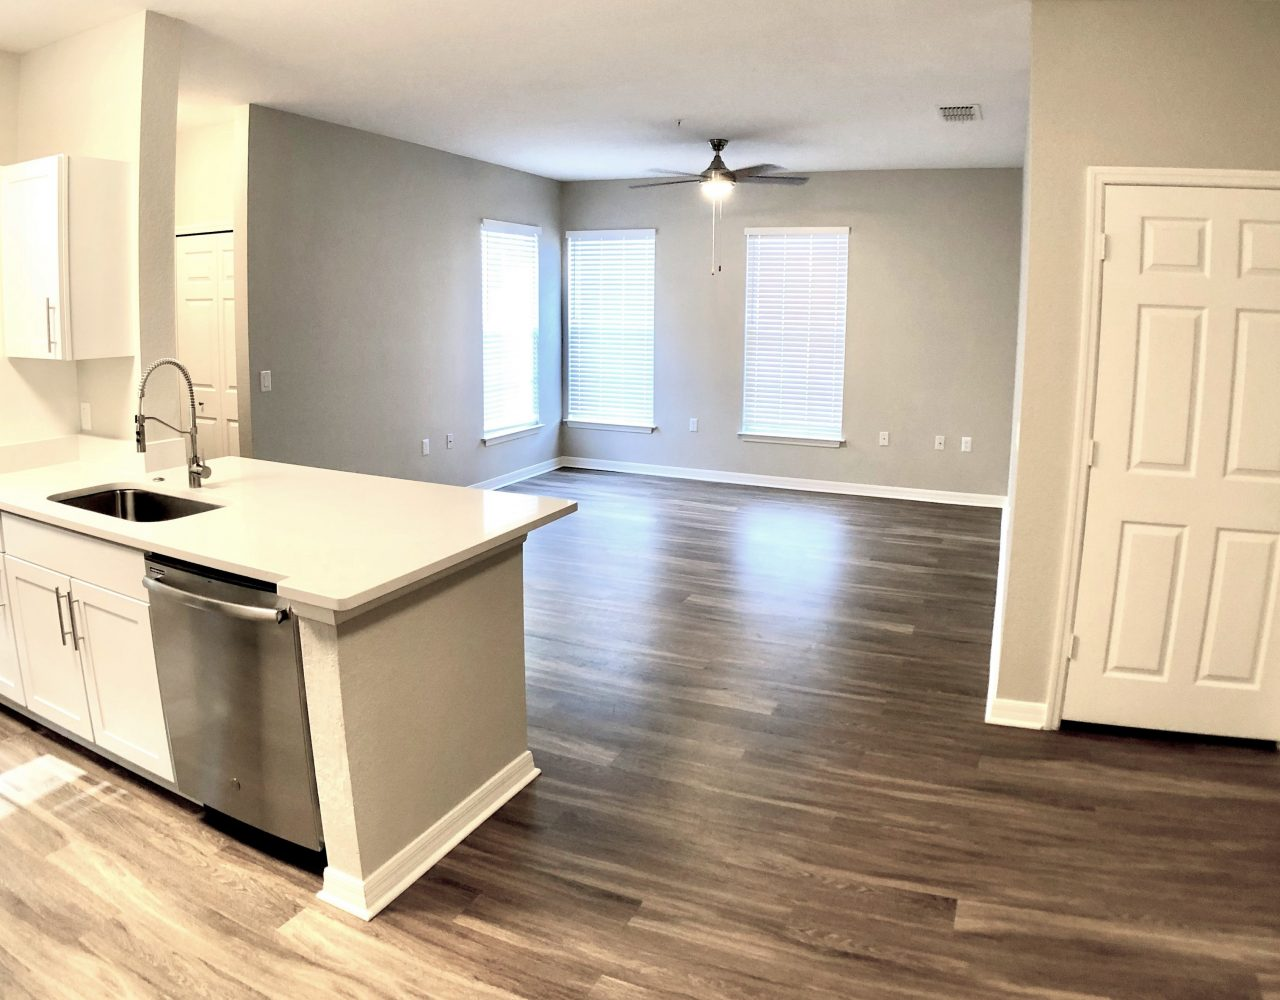 Windermere apartments renovated floor with kitchen and living room